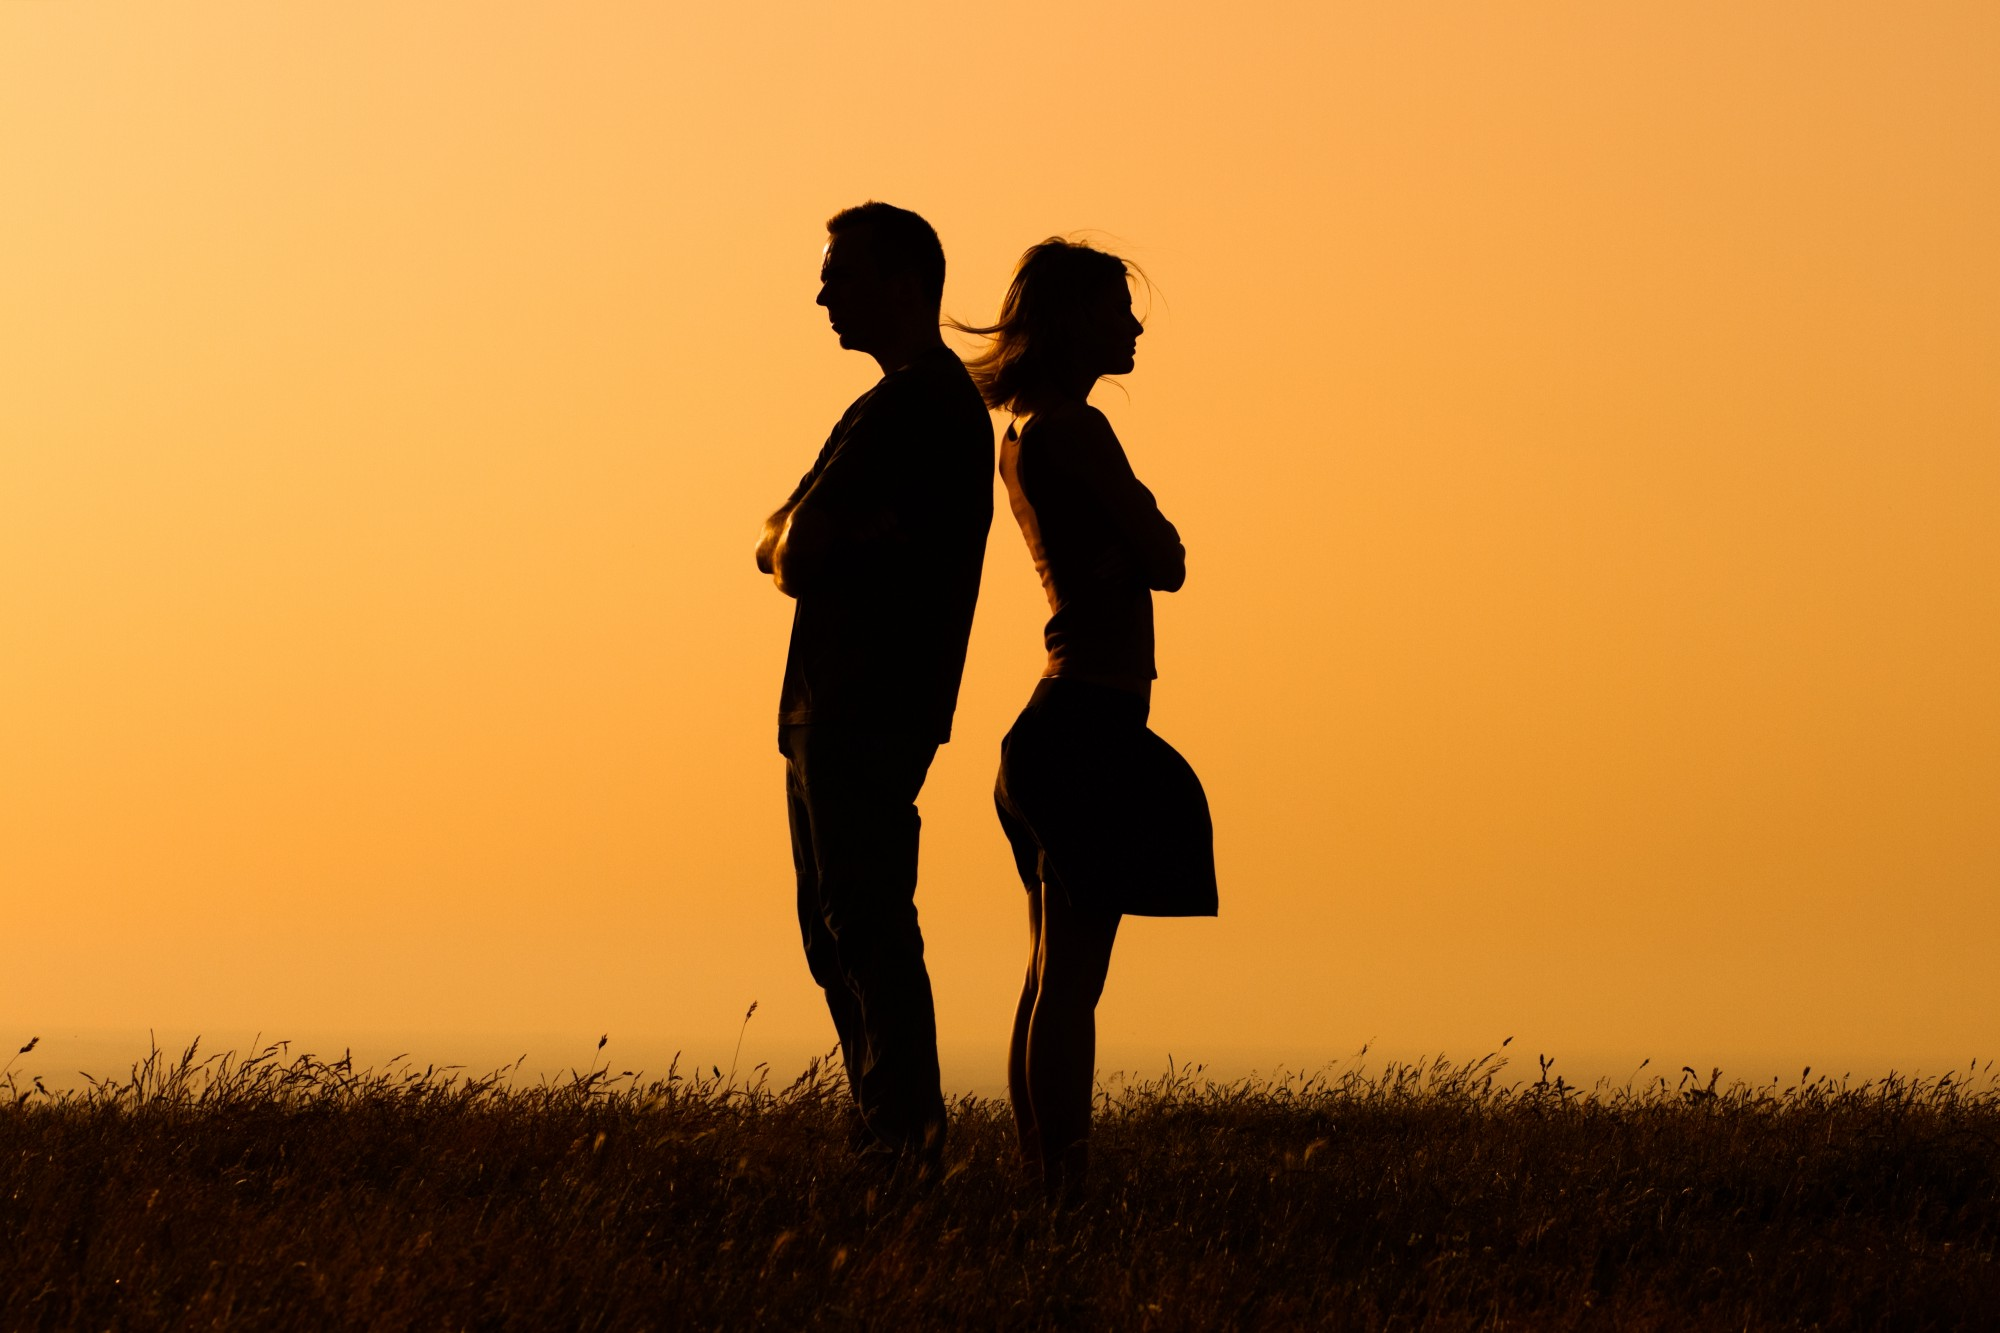 A man and a woman stand back to back, silhouetted against a dark orange, evening sky.